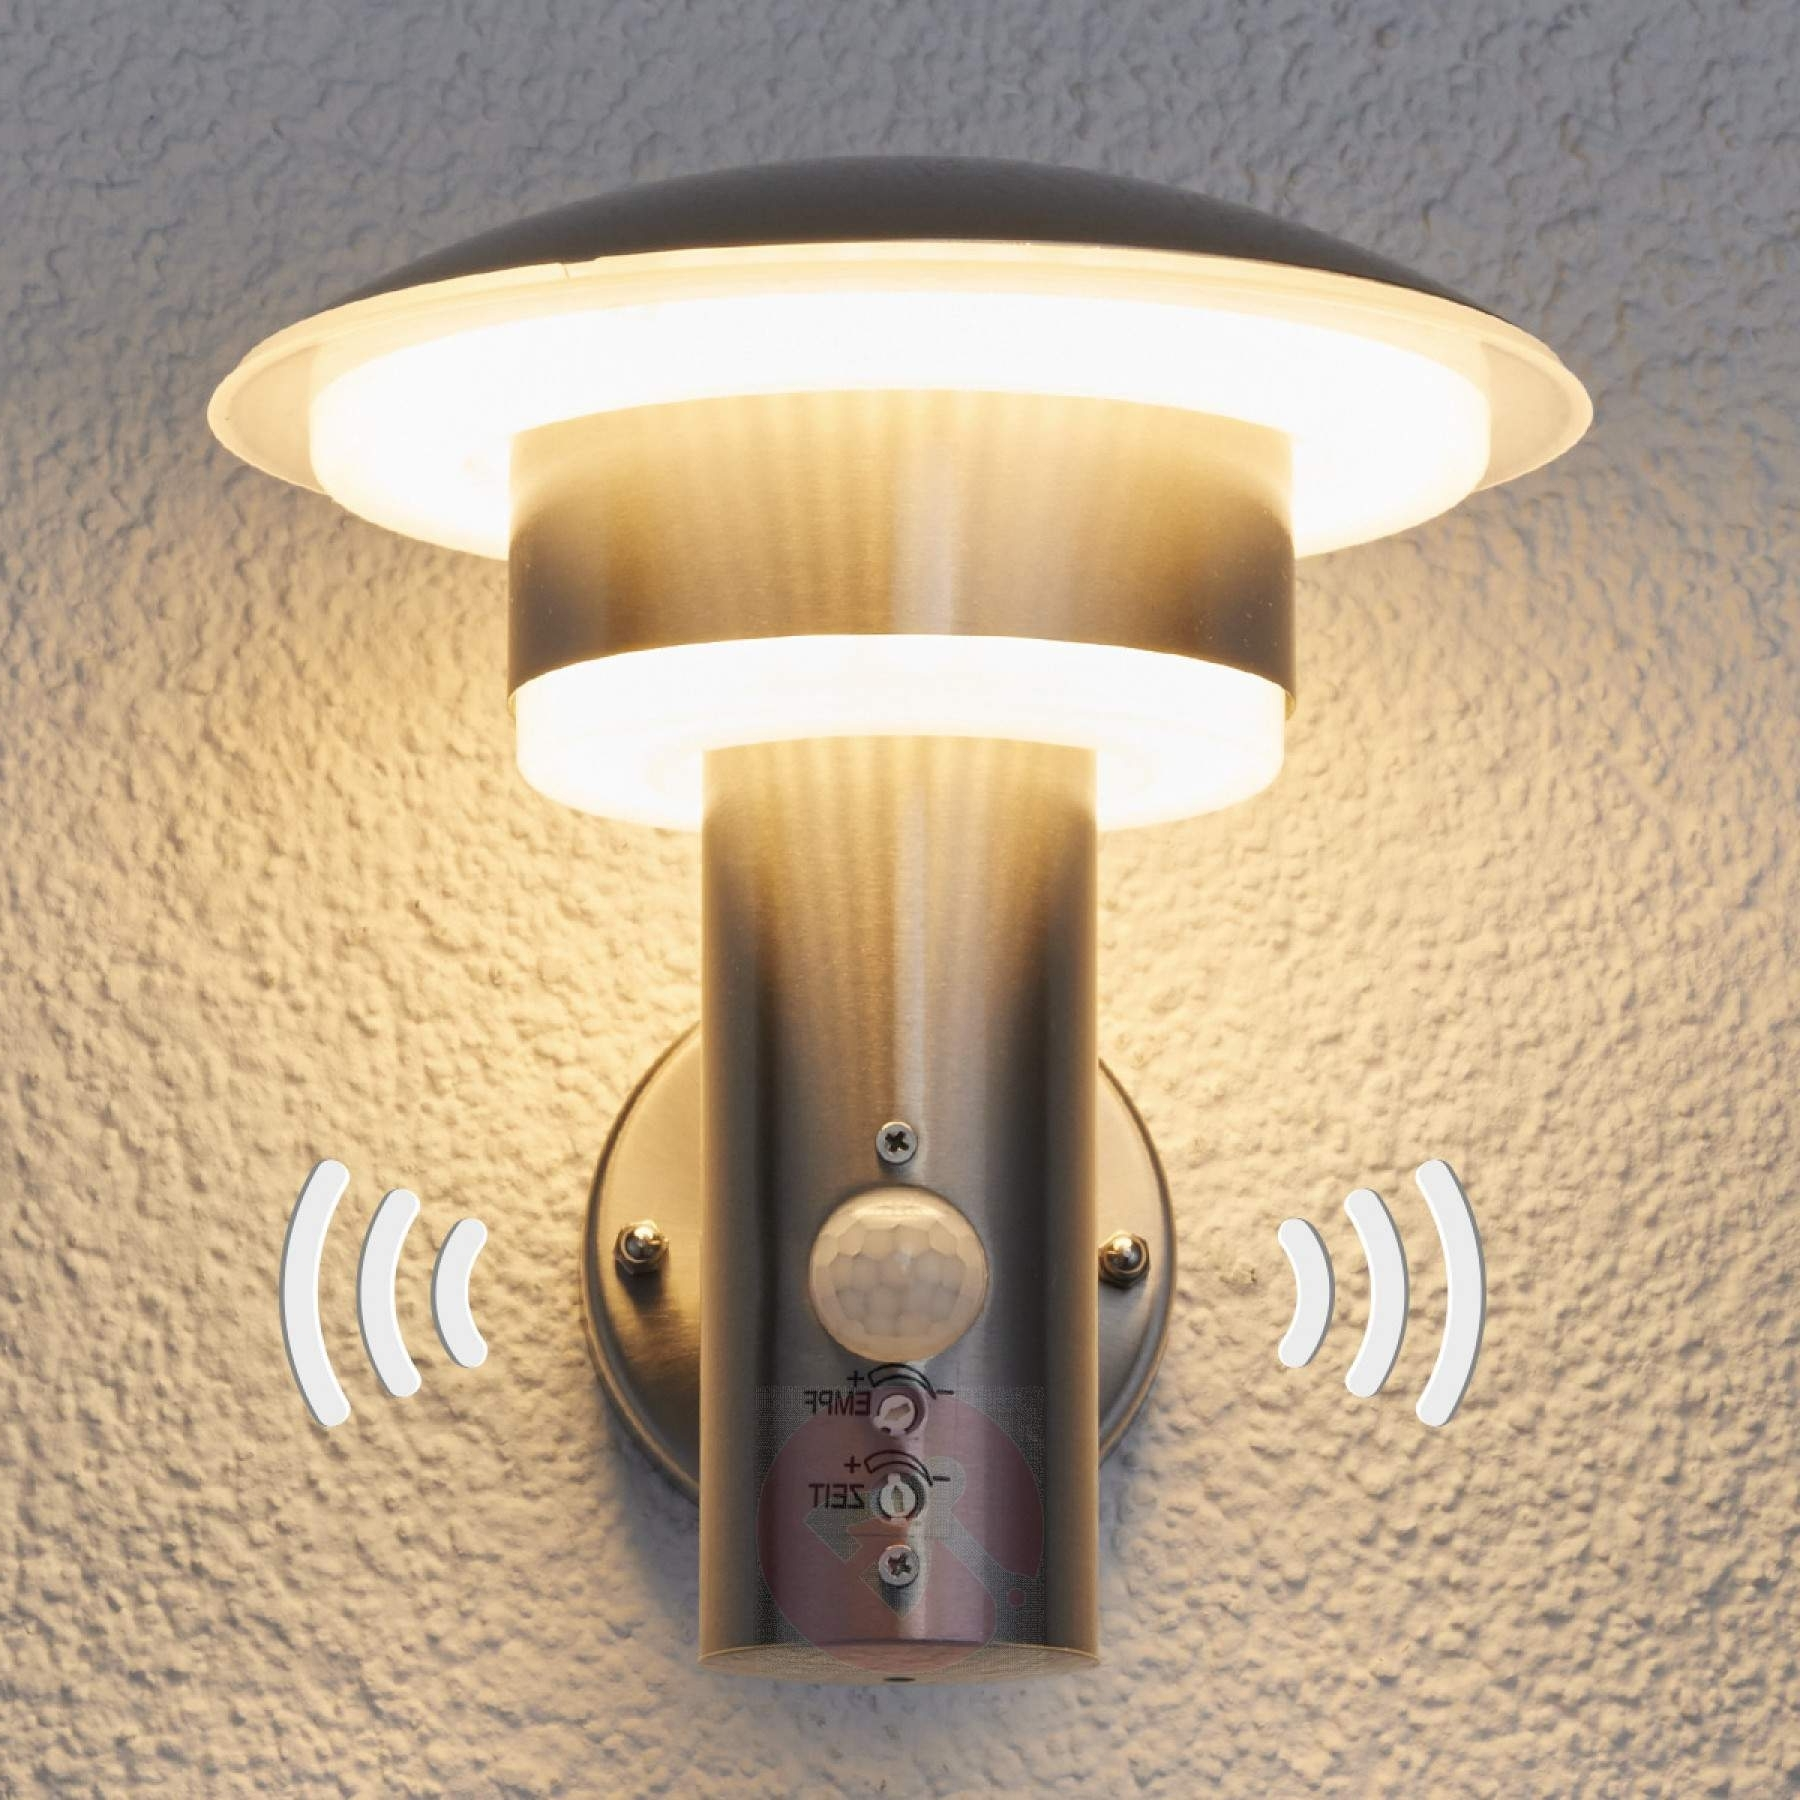 Outdoor Ceiling Lights With Pir – Outdoor Designs With Regard To Newest Outdoor Ceiling Pir Lights (View 8 of 20)